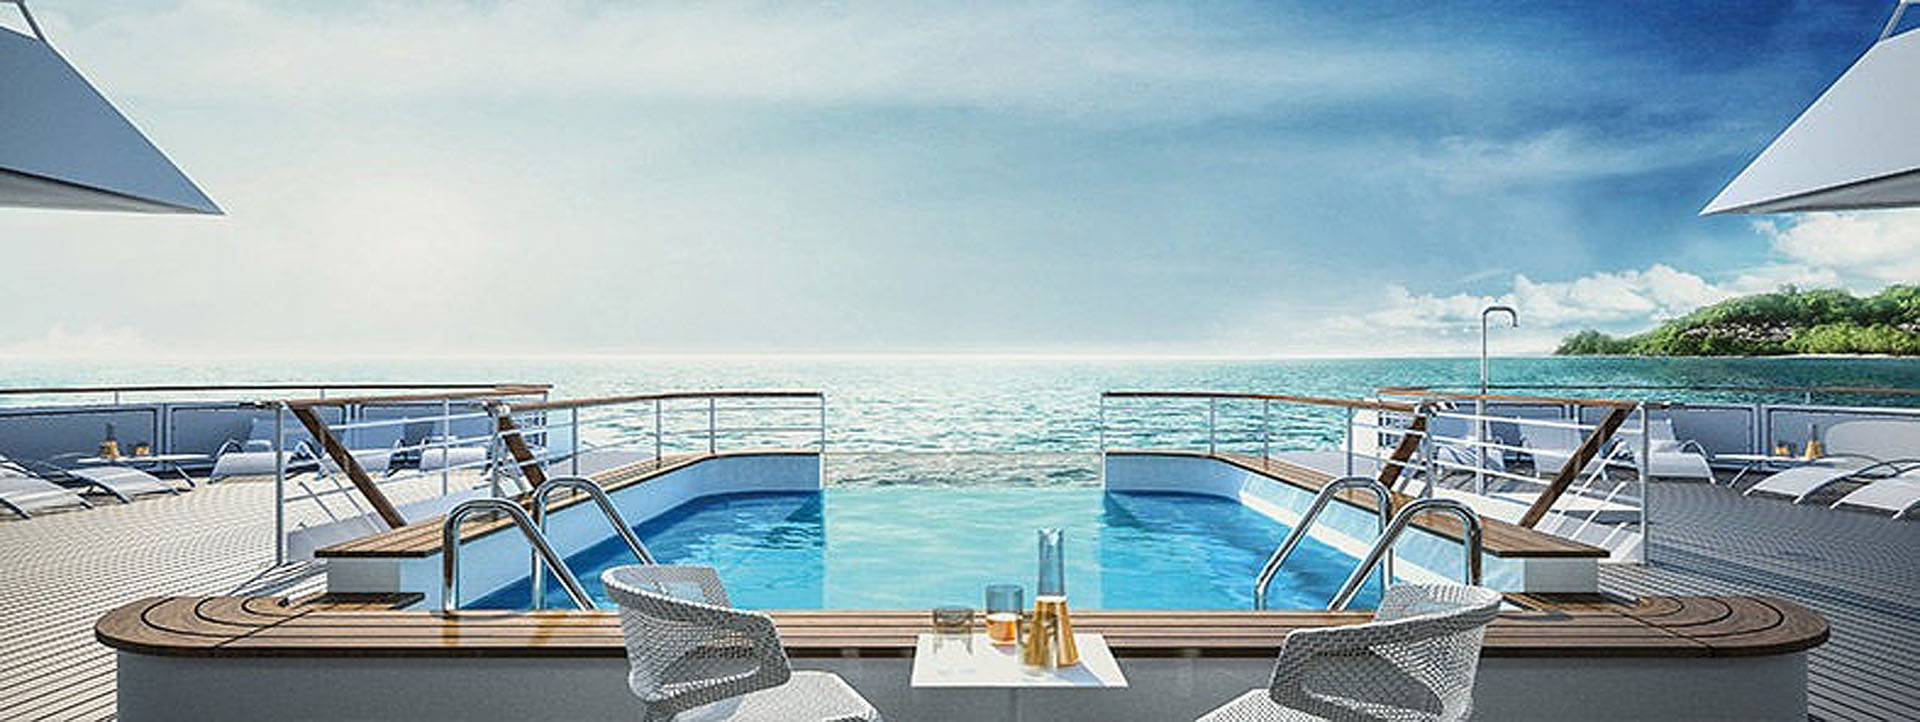 LE-LAPEROUSE-outdoor-swimming-pool-1